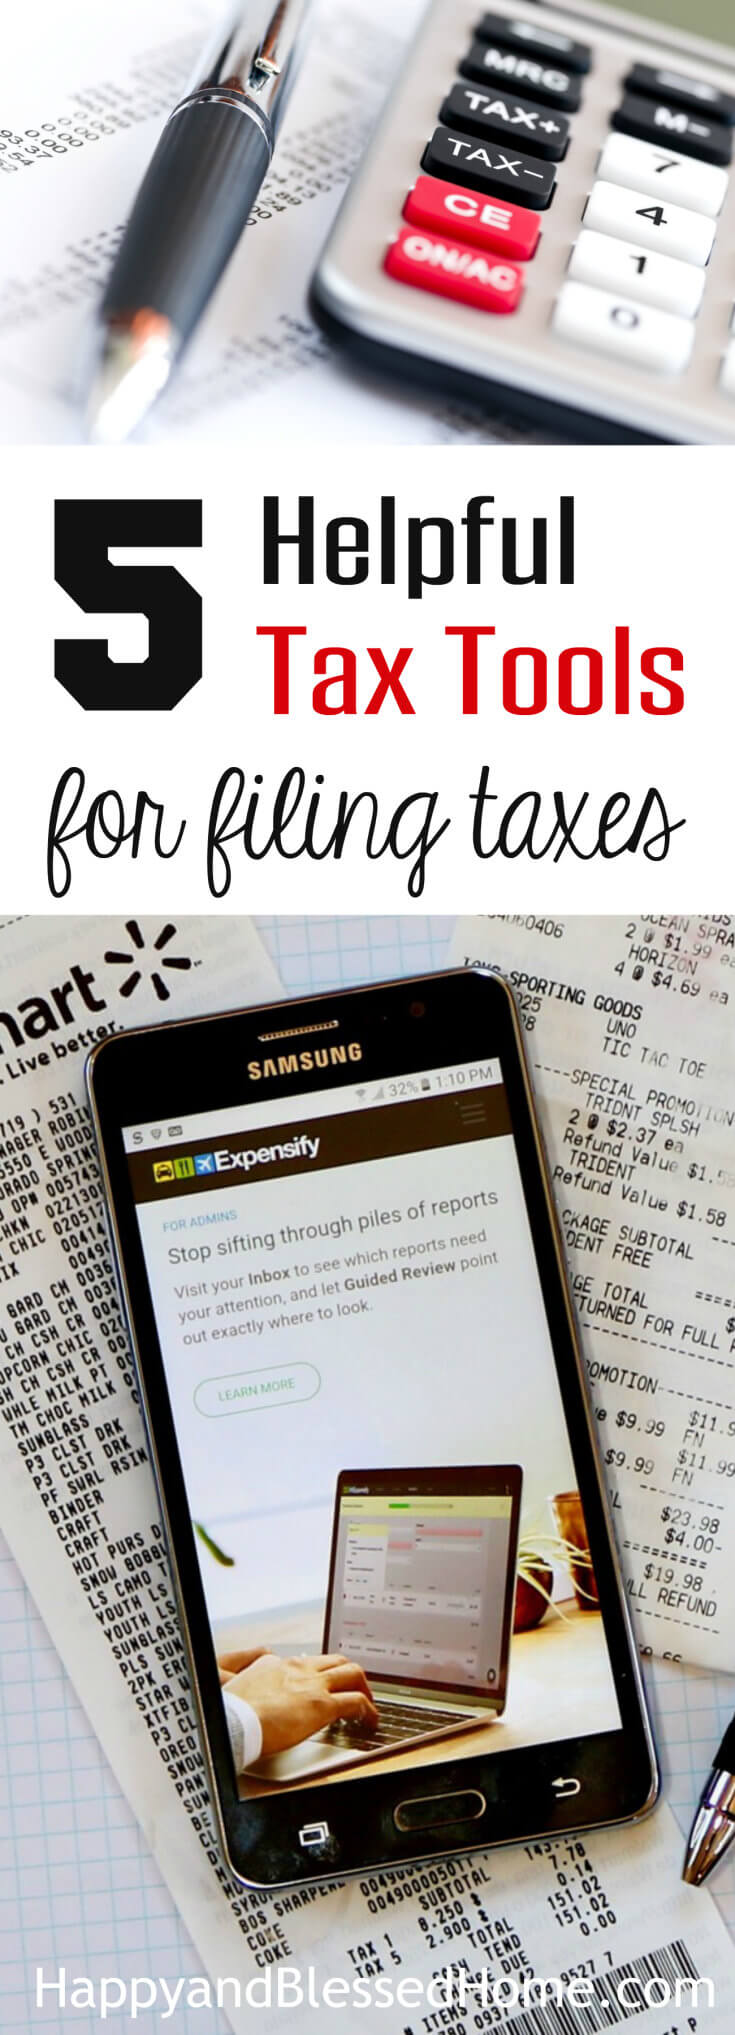 5 Helpful Tax Tools for Filing Taxes - Income Tax Return Resources